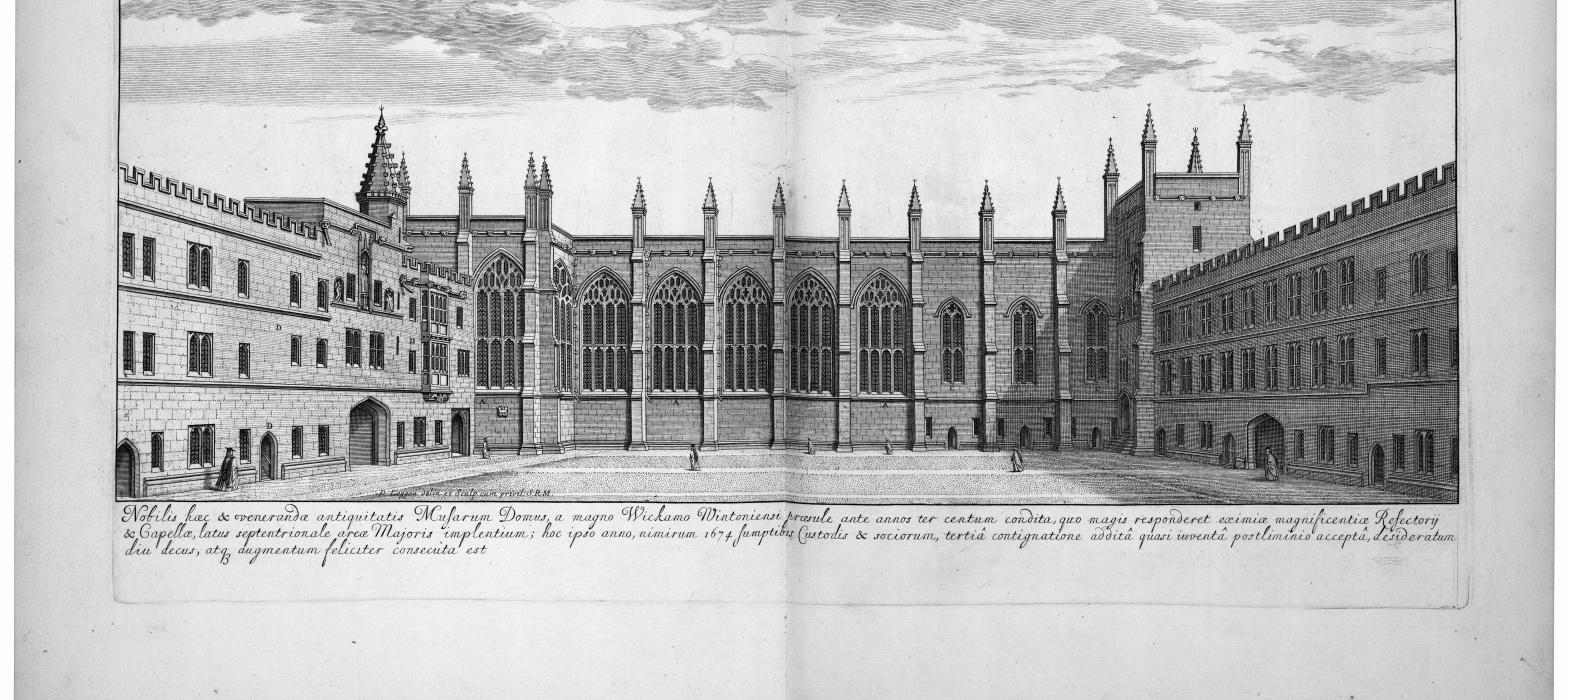 New College Library, Oxford, BT1.5.3, plate 20 opening (greyscale)